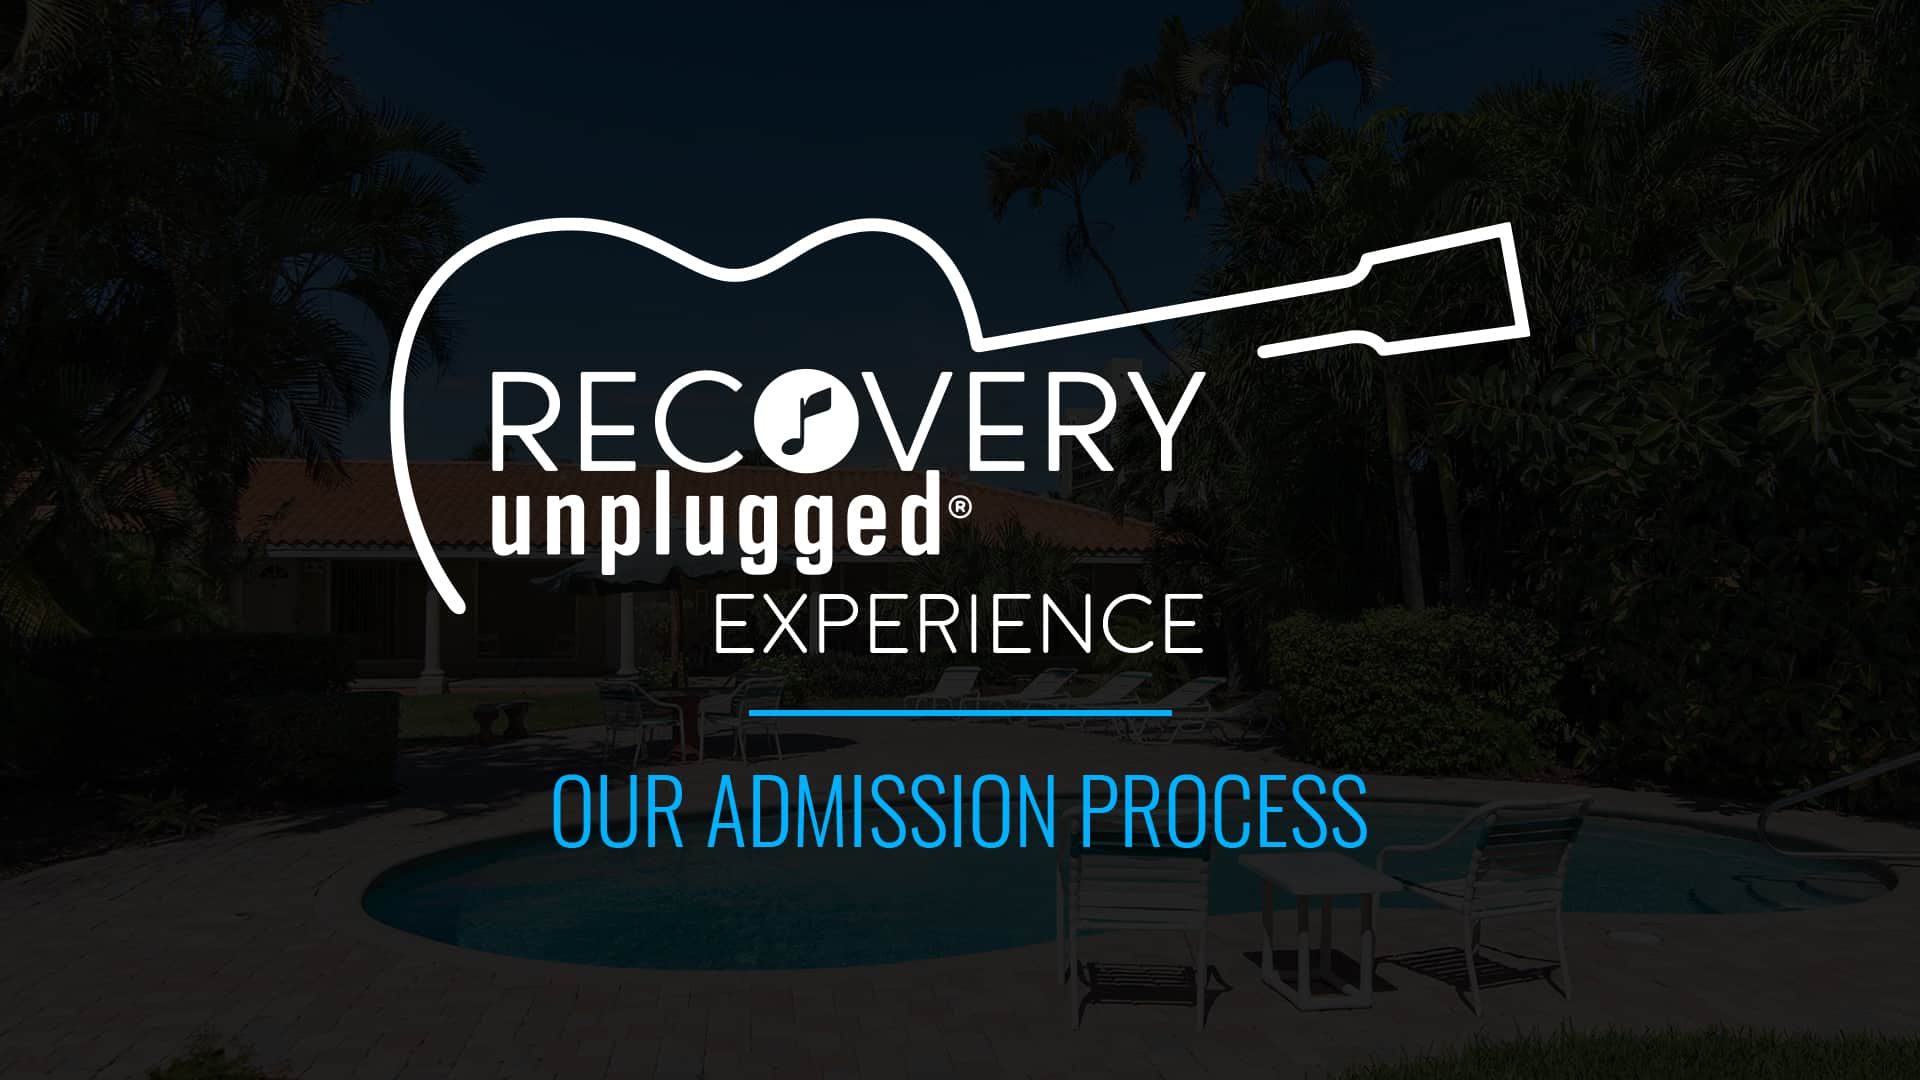 The Recovery Unplugged Experience: Admissions